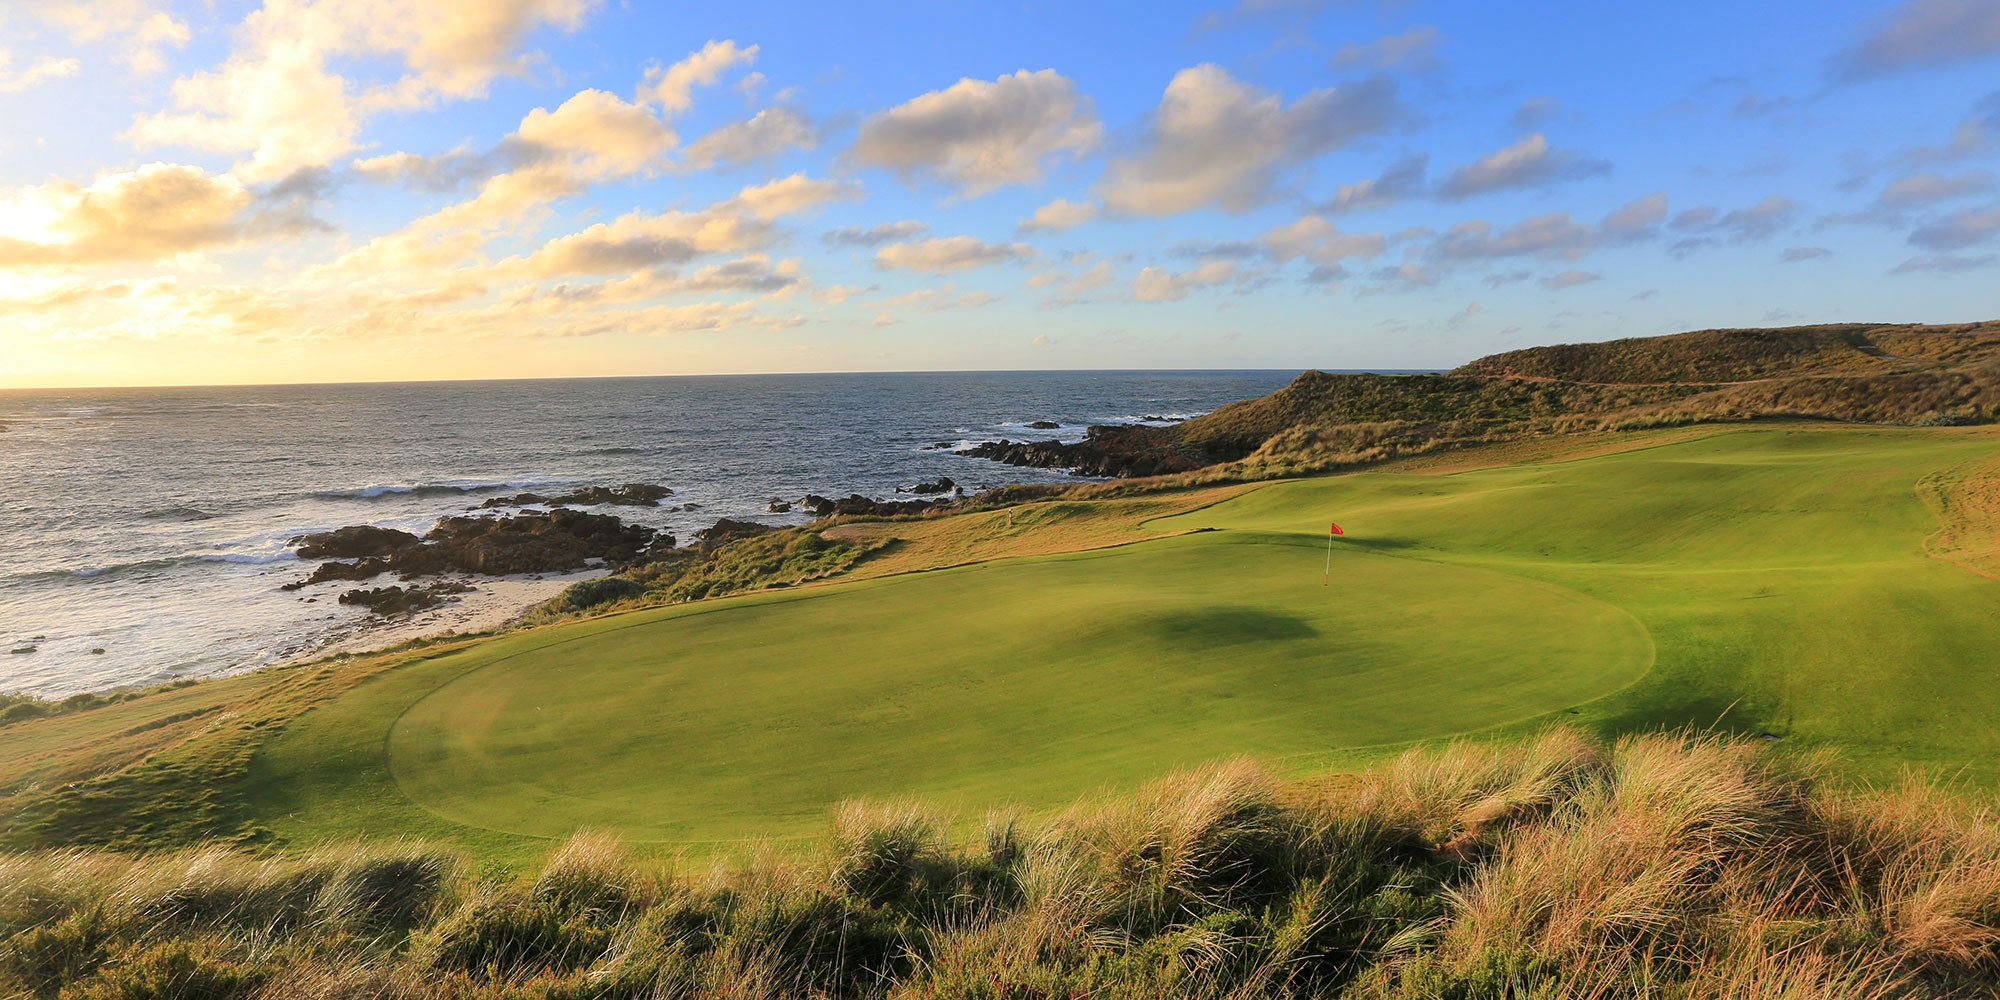 King Island | 1 night, 2 games